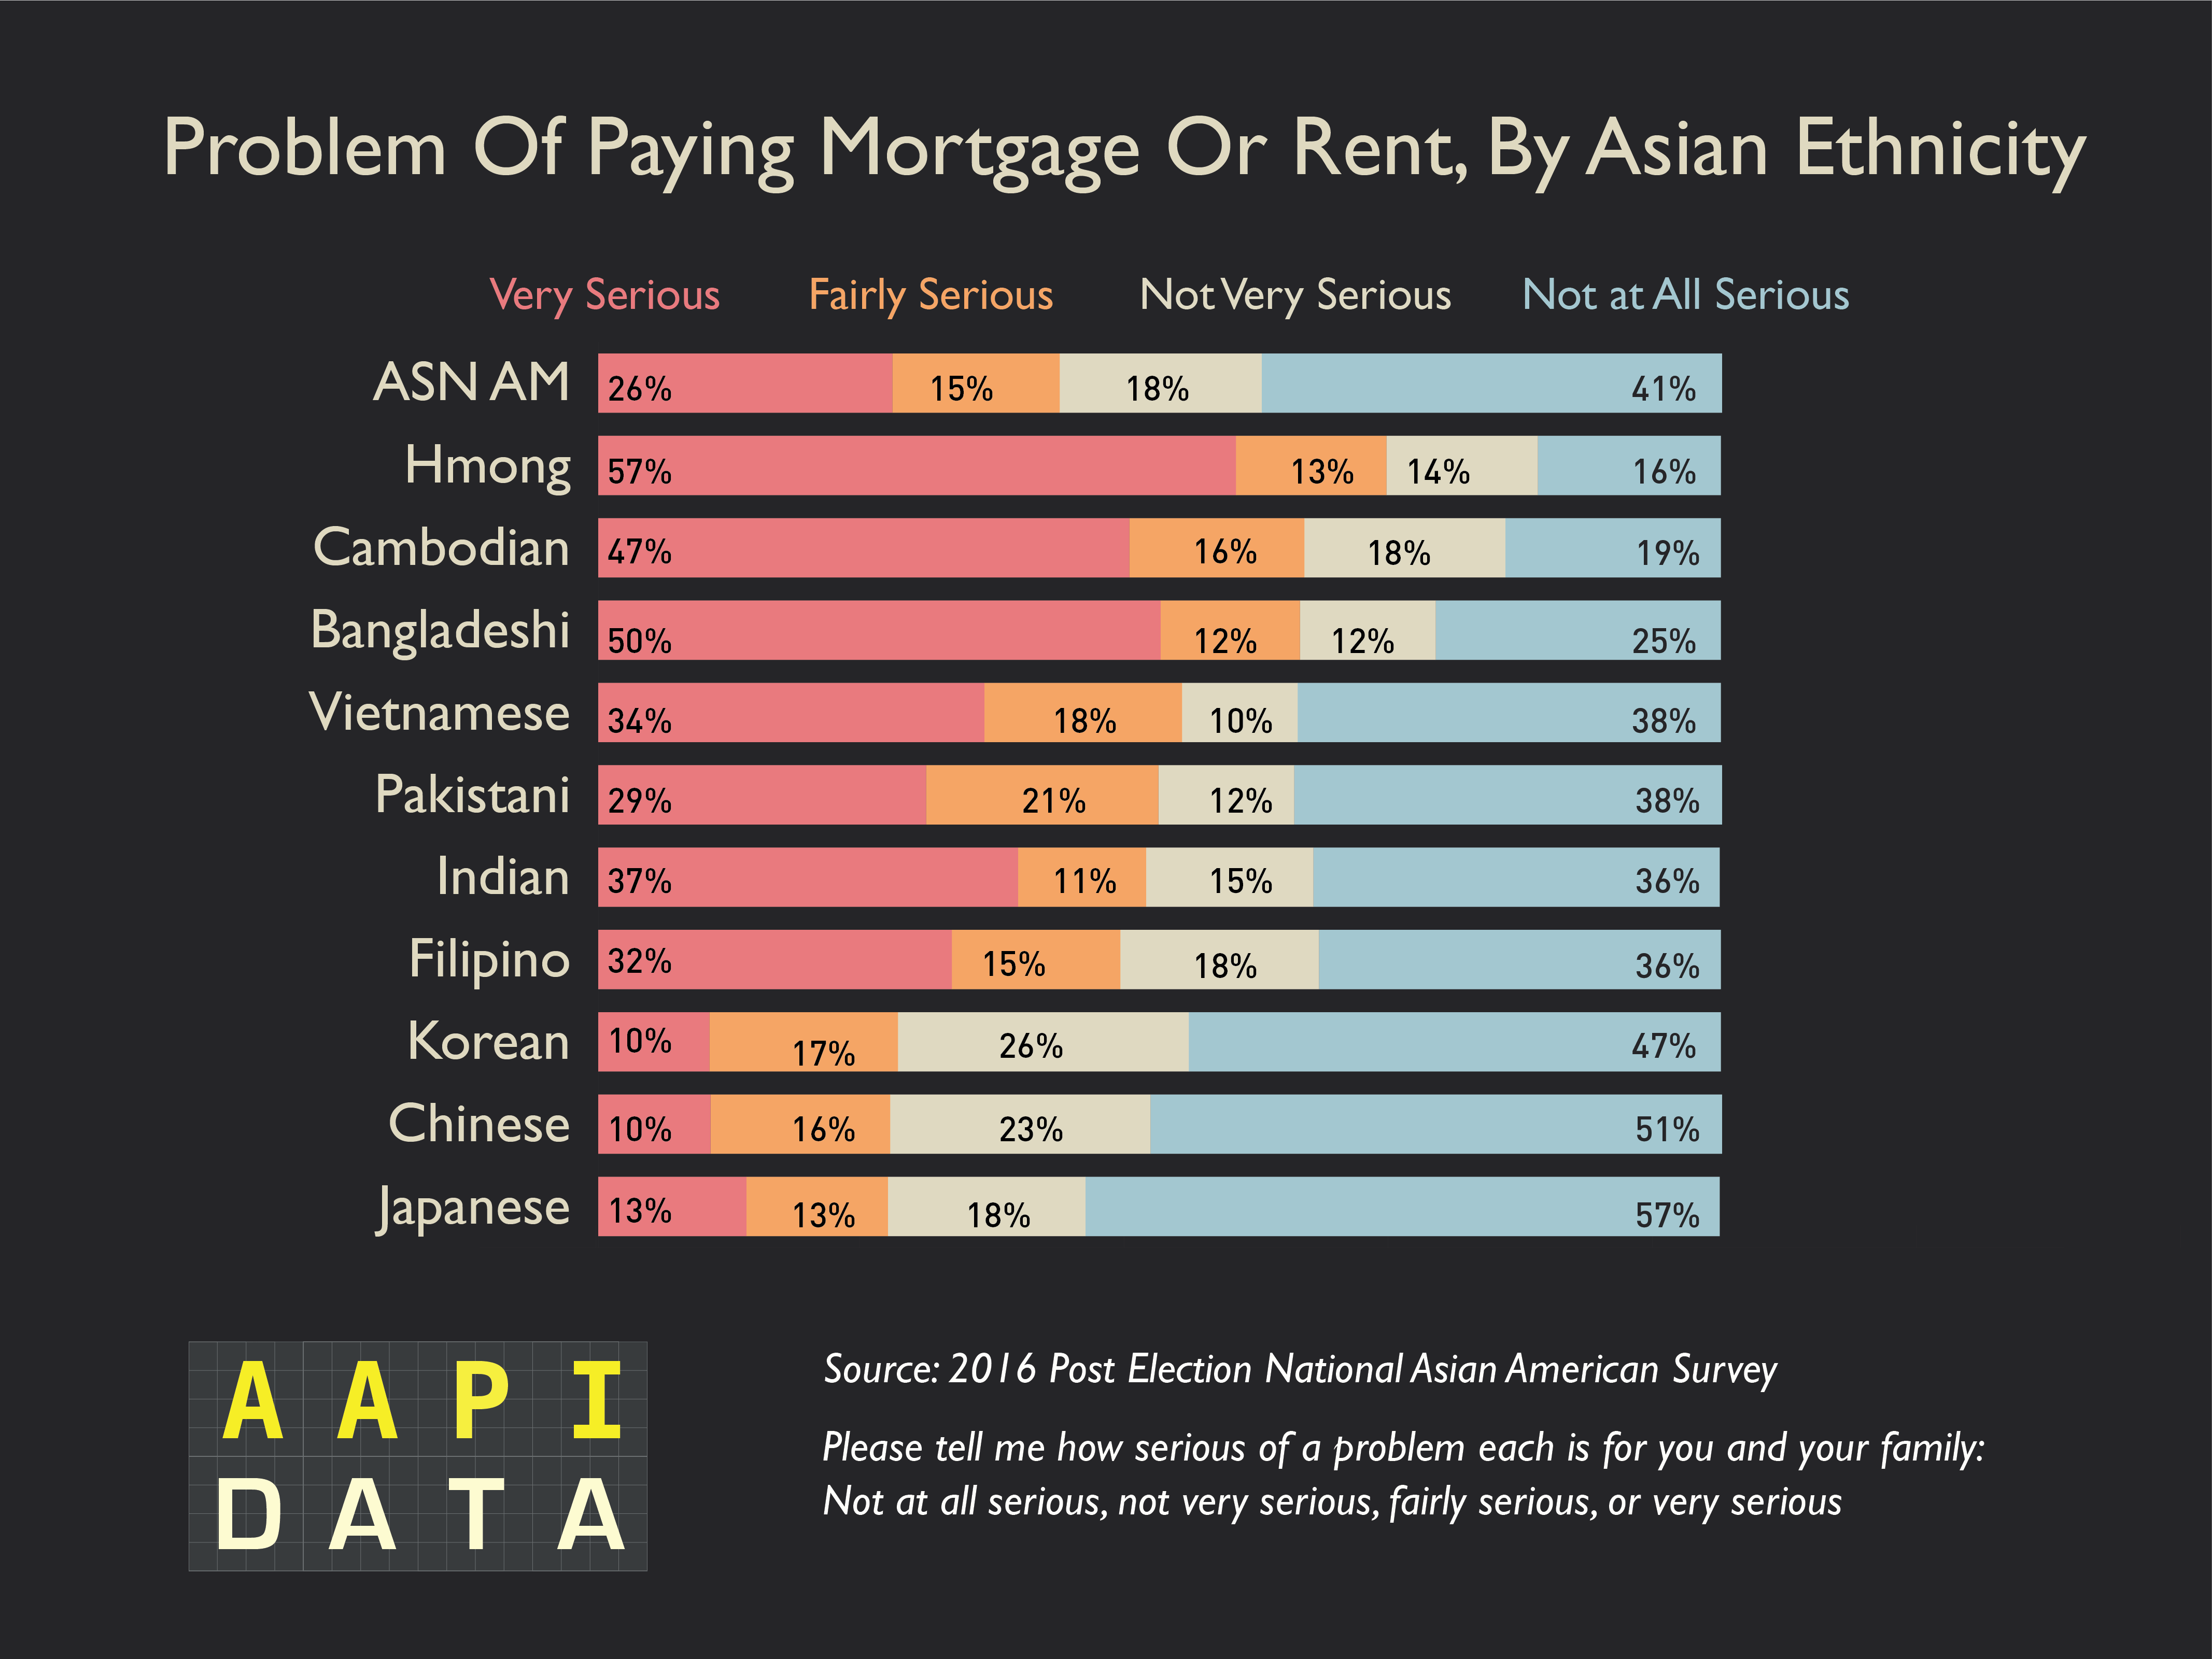 Mortgage or rent 22